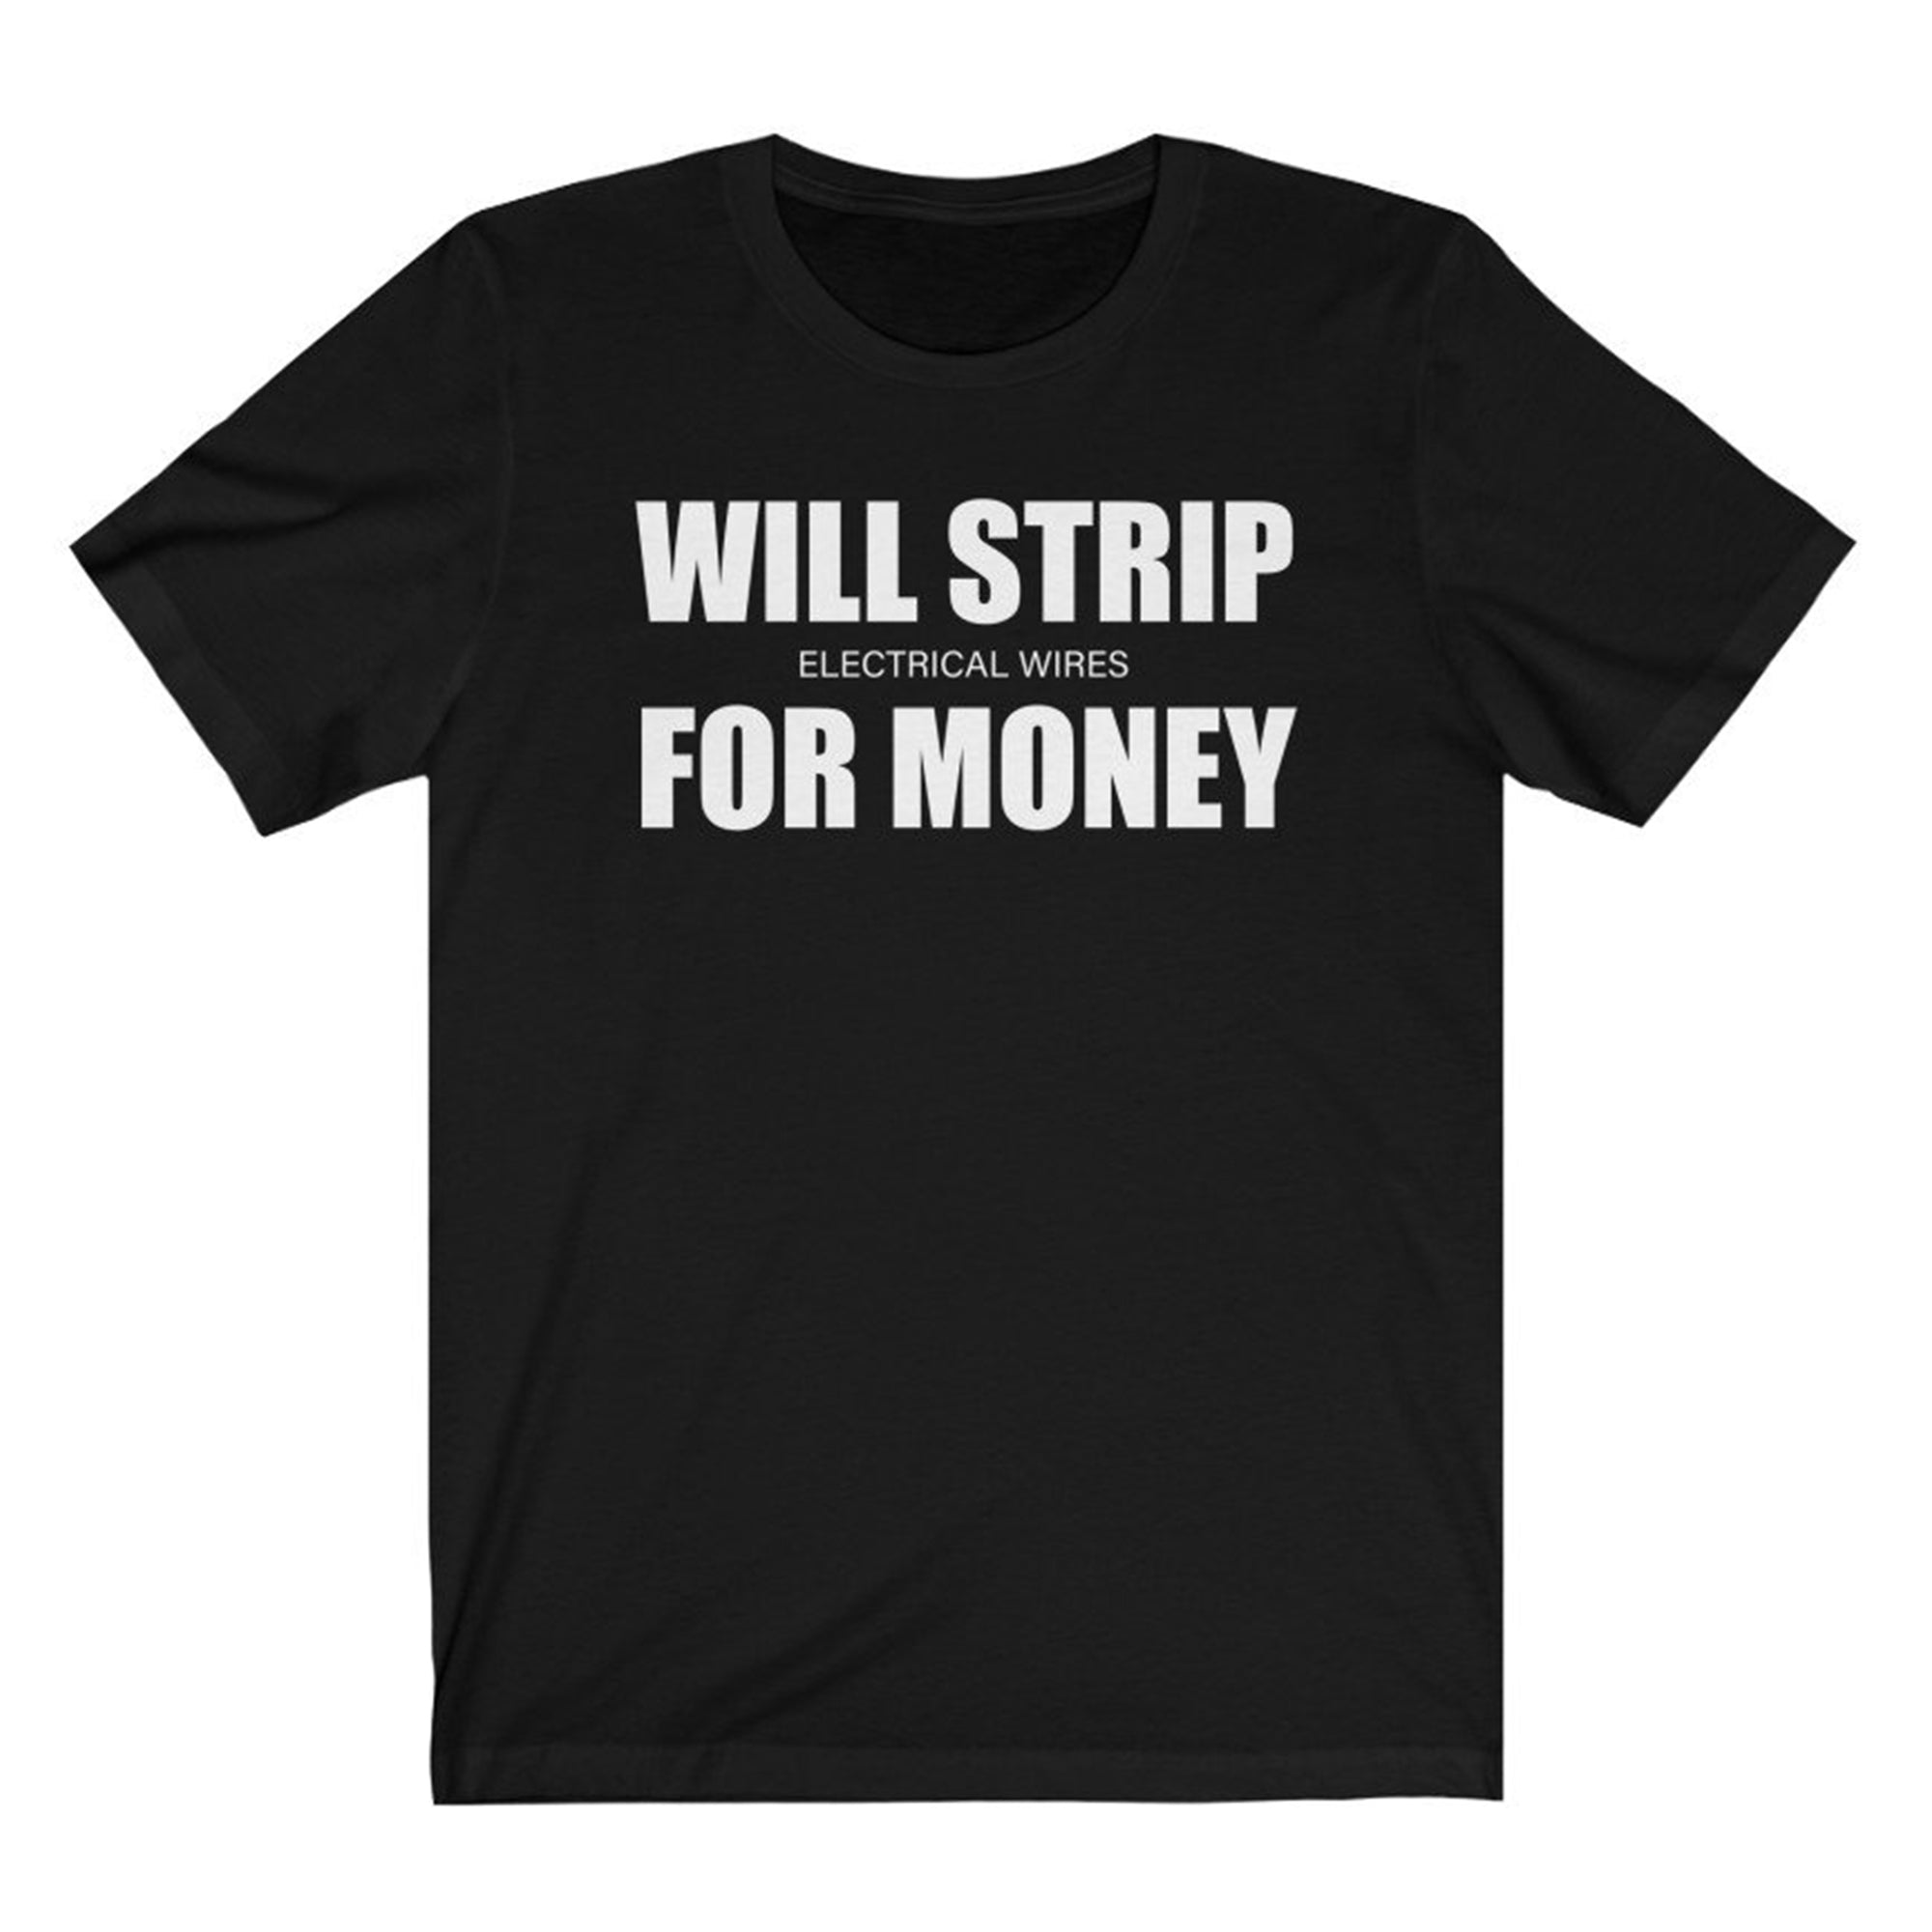 Funny Electrician Shirt, Will Strip Electrical Wires for Money